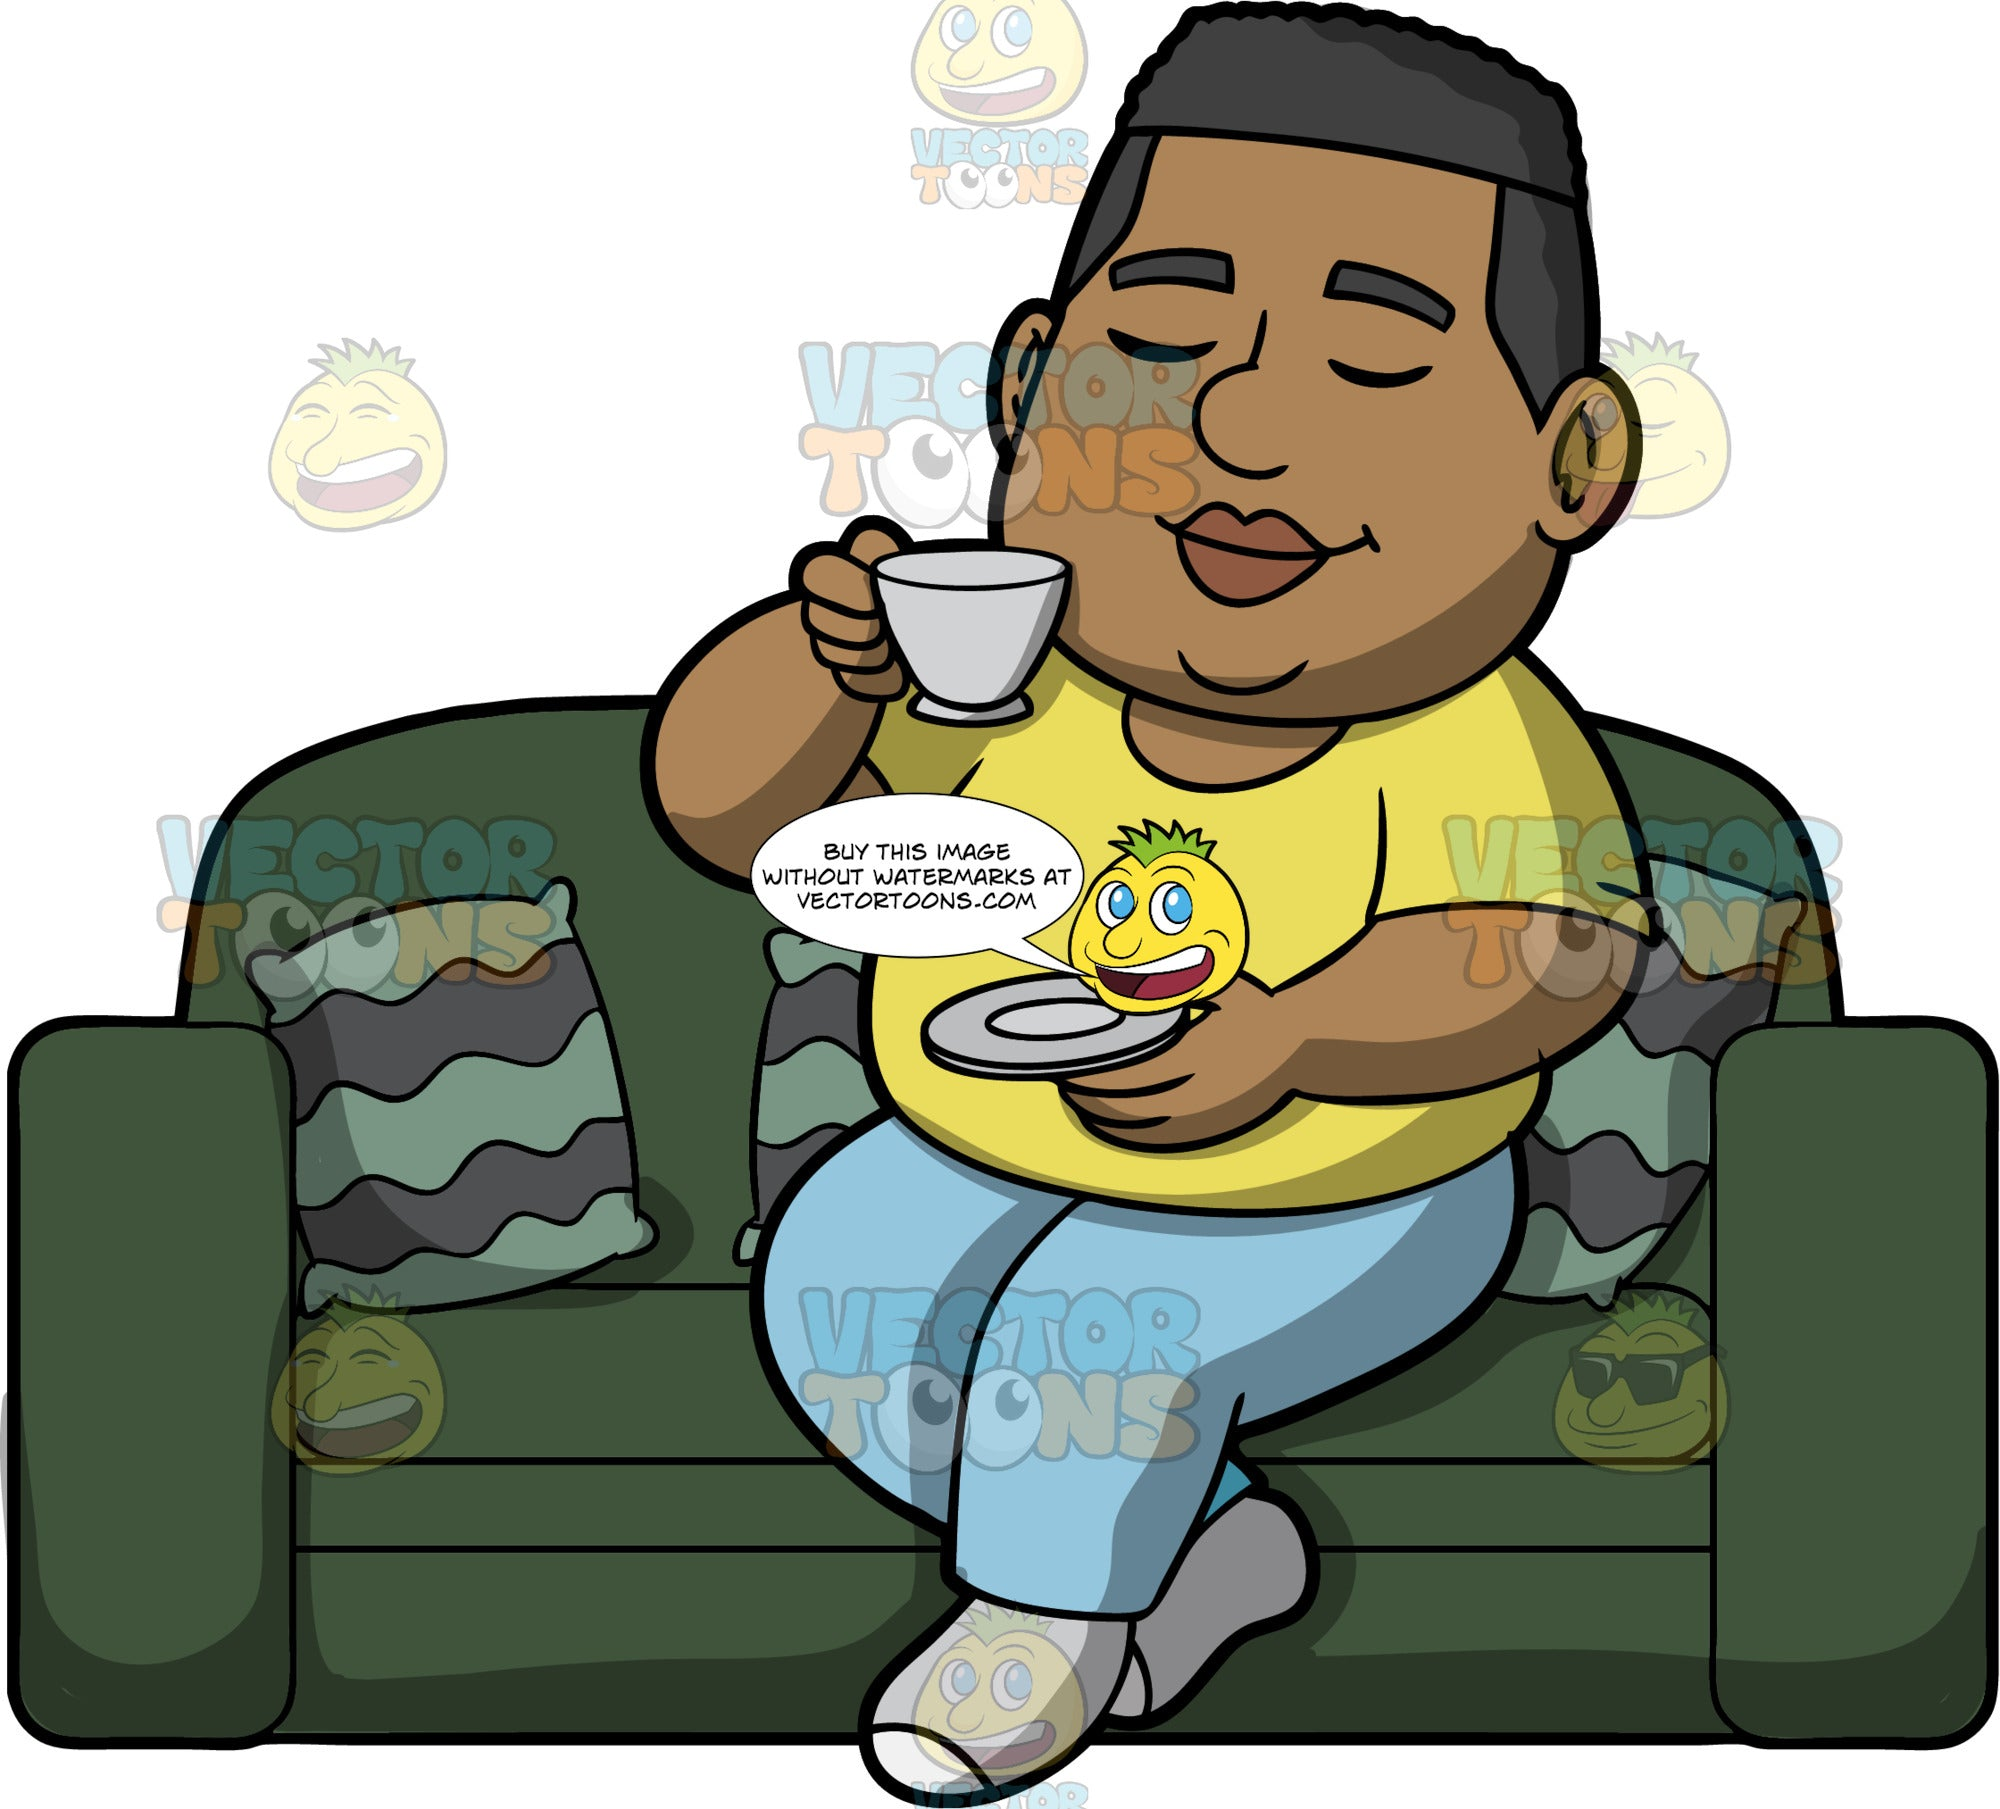 James Drinking A Cup Of Tea. A black man wearing light blue pants, a yellow t-shirt, and gray socks, sitting on a green couch drinking a cup of tea